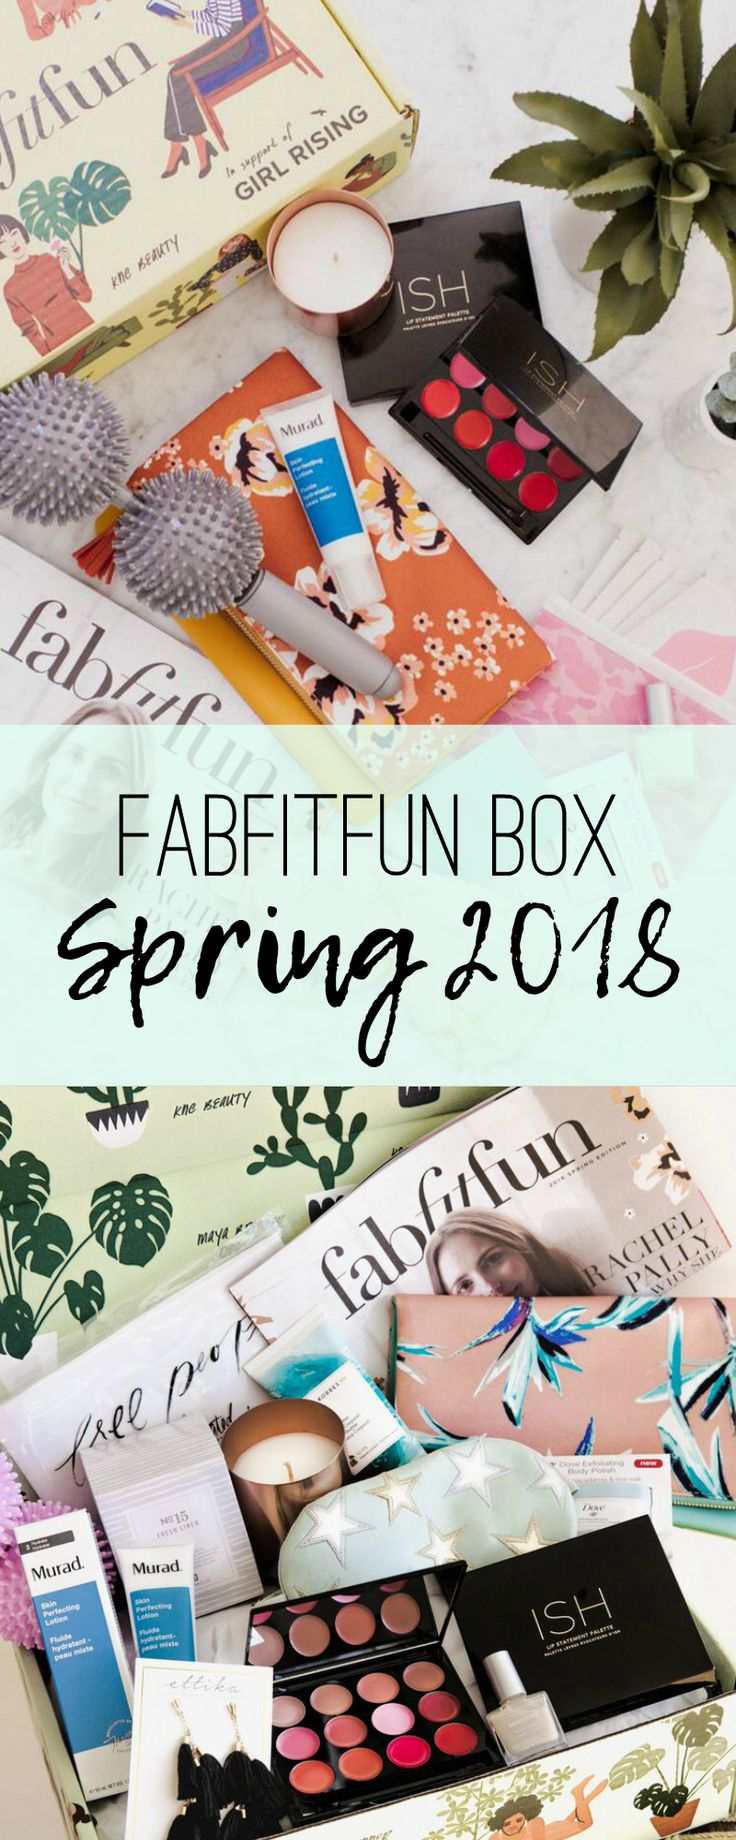 7 best marions kitchen in the usa images on pinterest cucina fabfitfun box reveal spring 2018 10 off coupon code fandeluxe Image collections